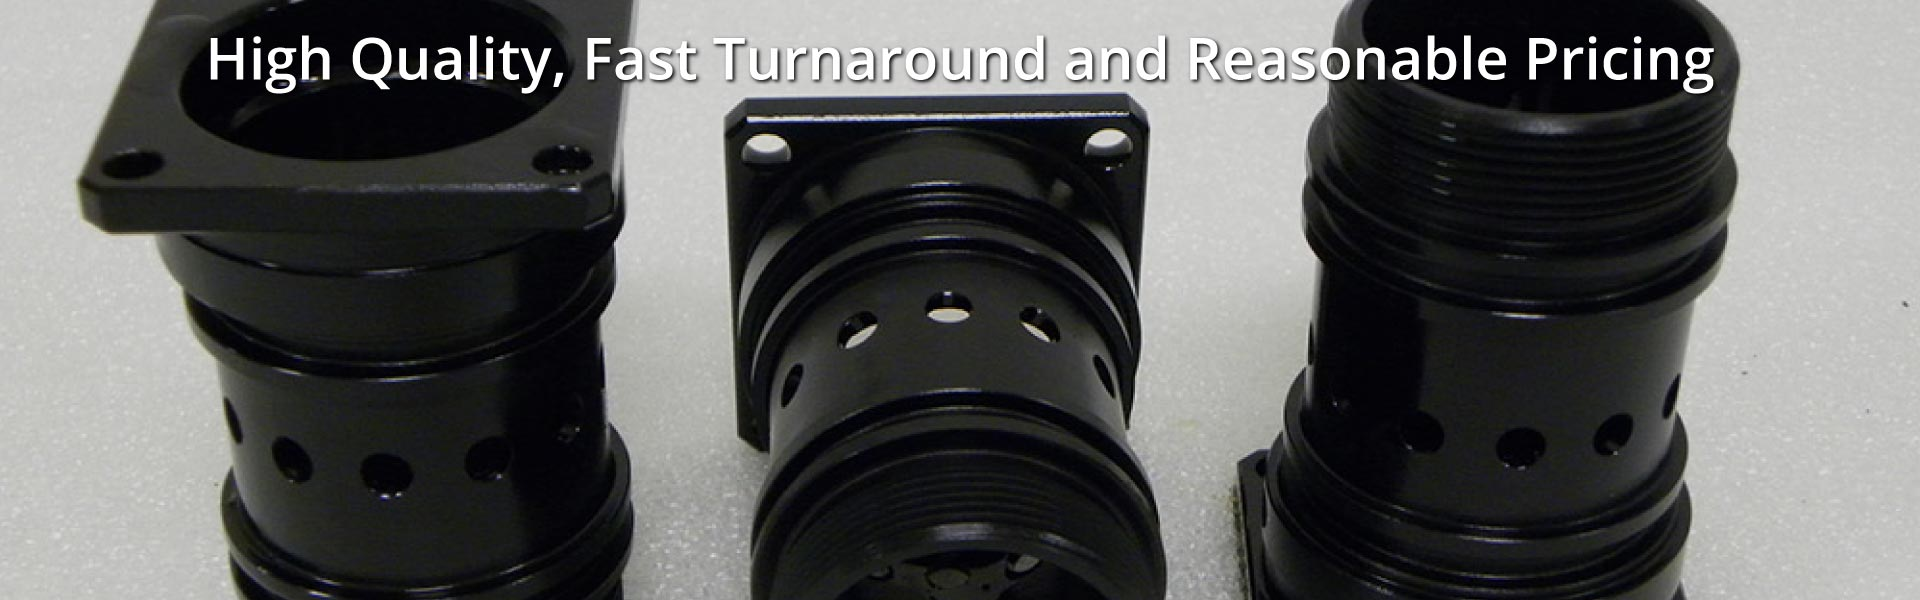 High Quality, Fast Turnaround and Reasonable Pricing | Black Oxide plated metal